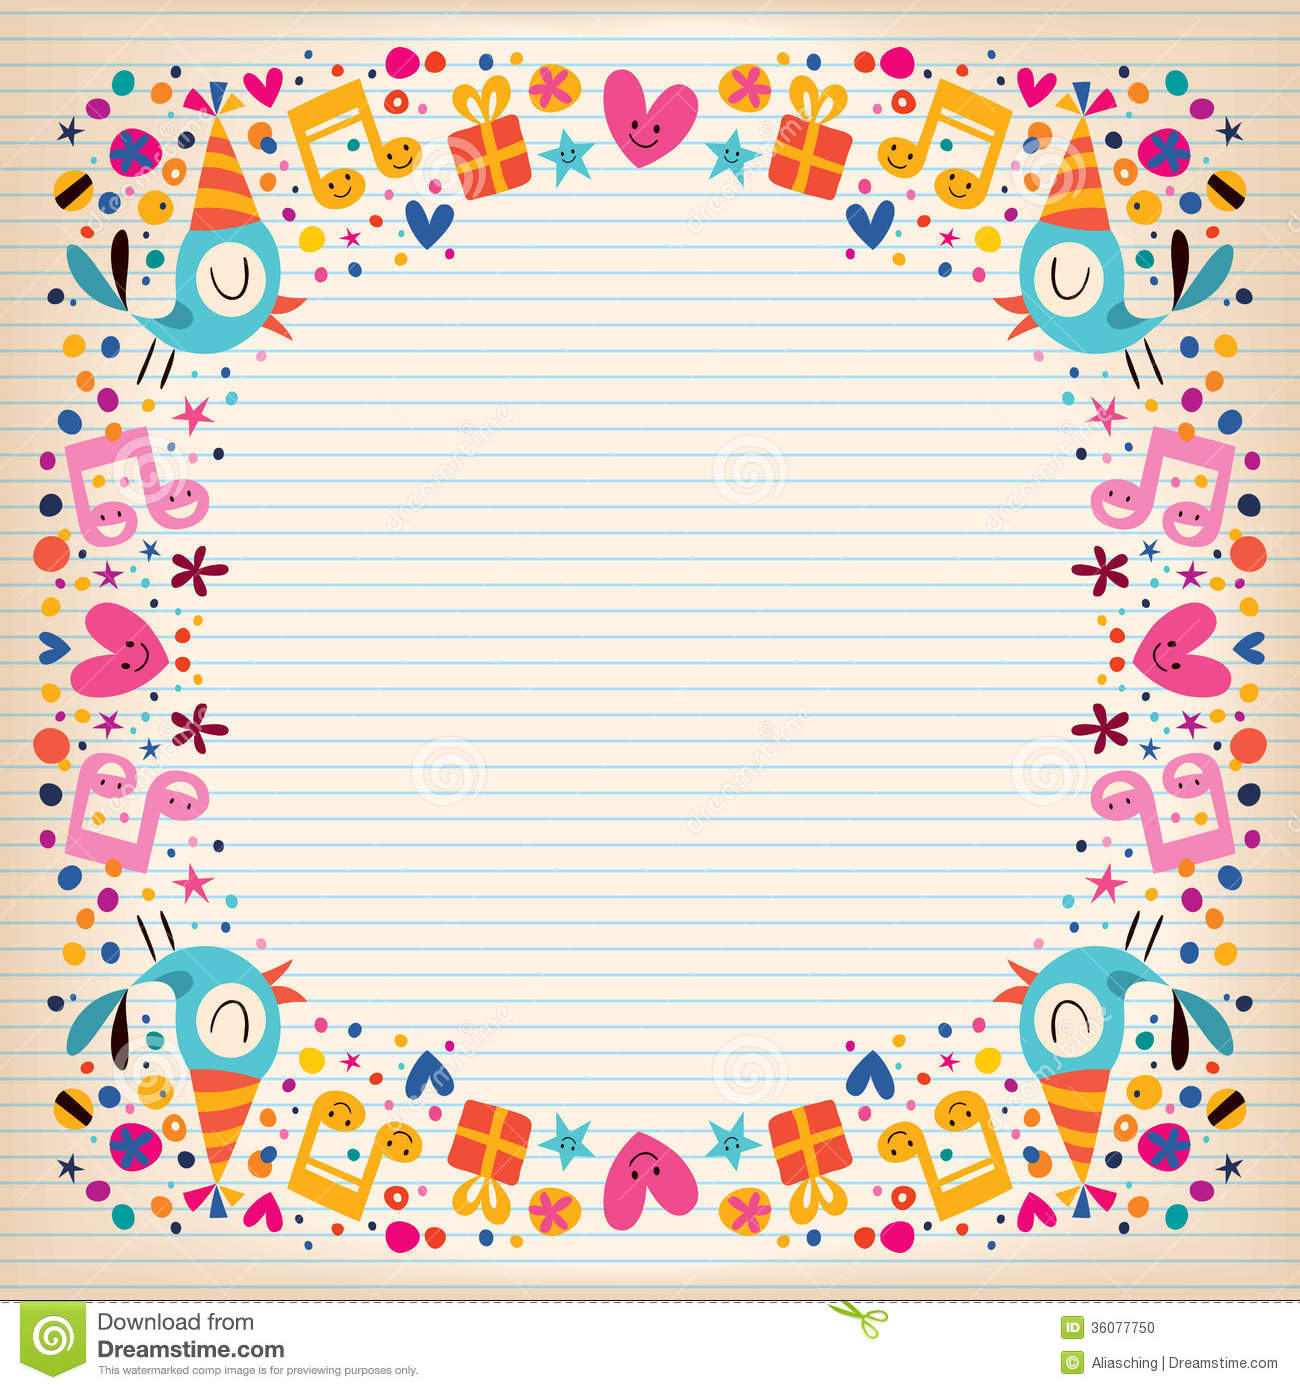 happy birthday card borders ; happy-birthday-border-lined-paper-card-cute-characters-36077750